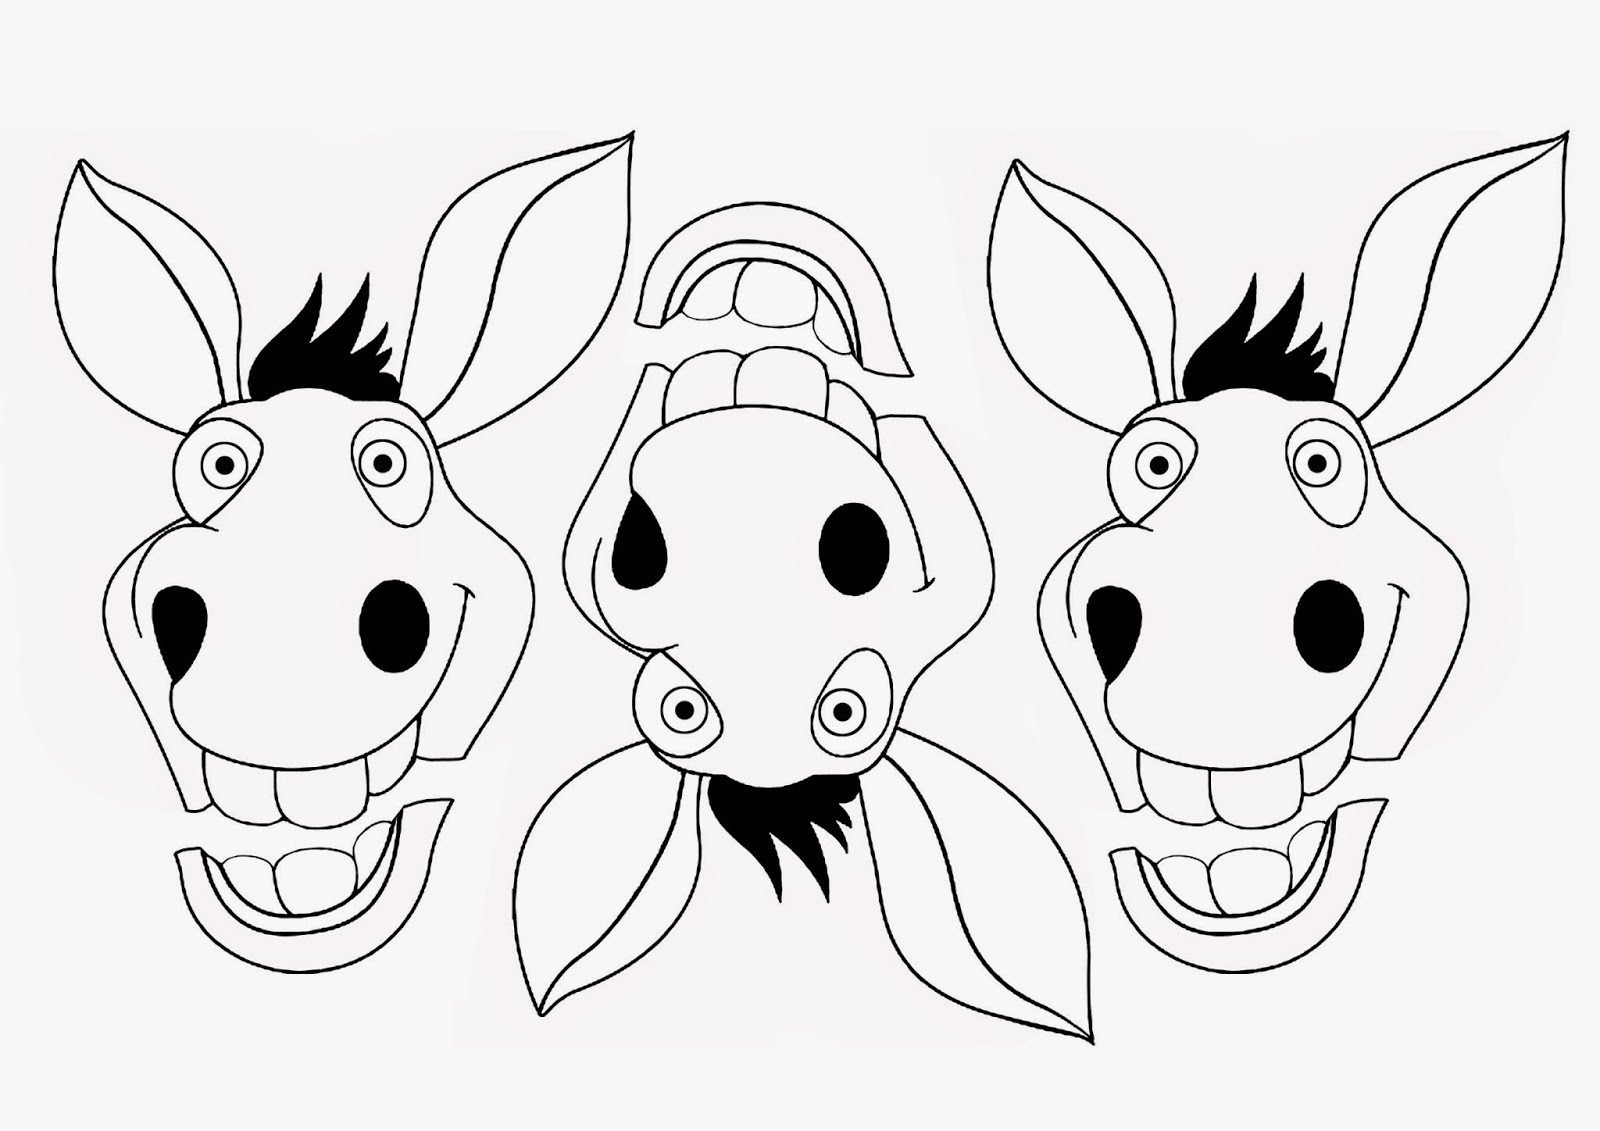 Donkey Face Drawing at GetDrawings.com | Free for personal use ...